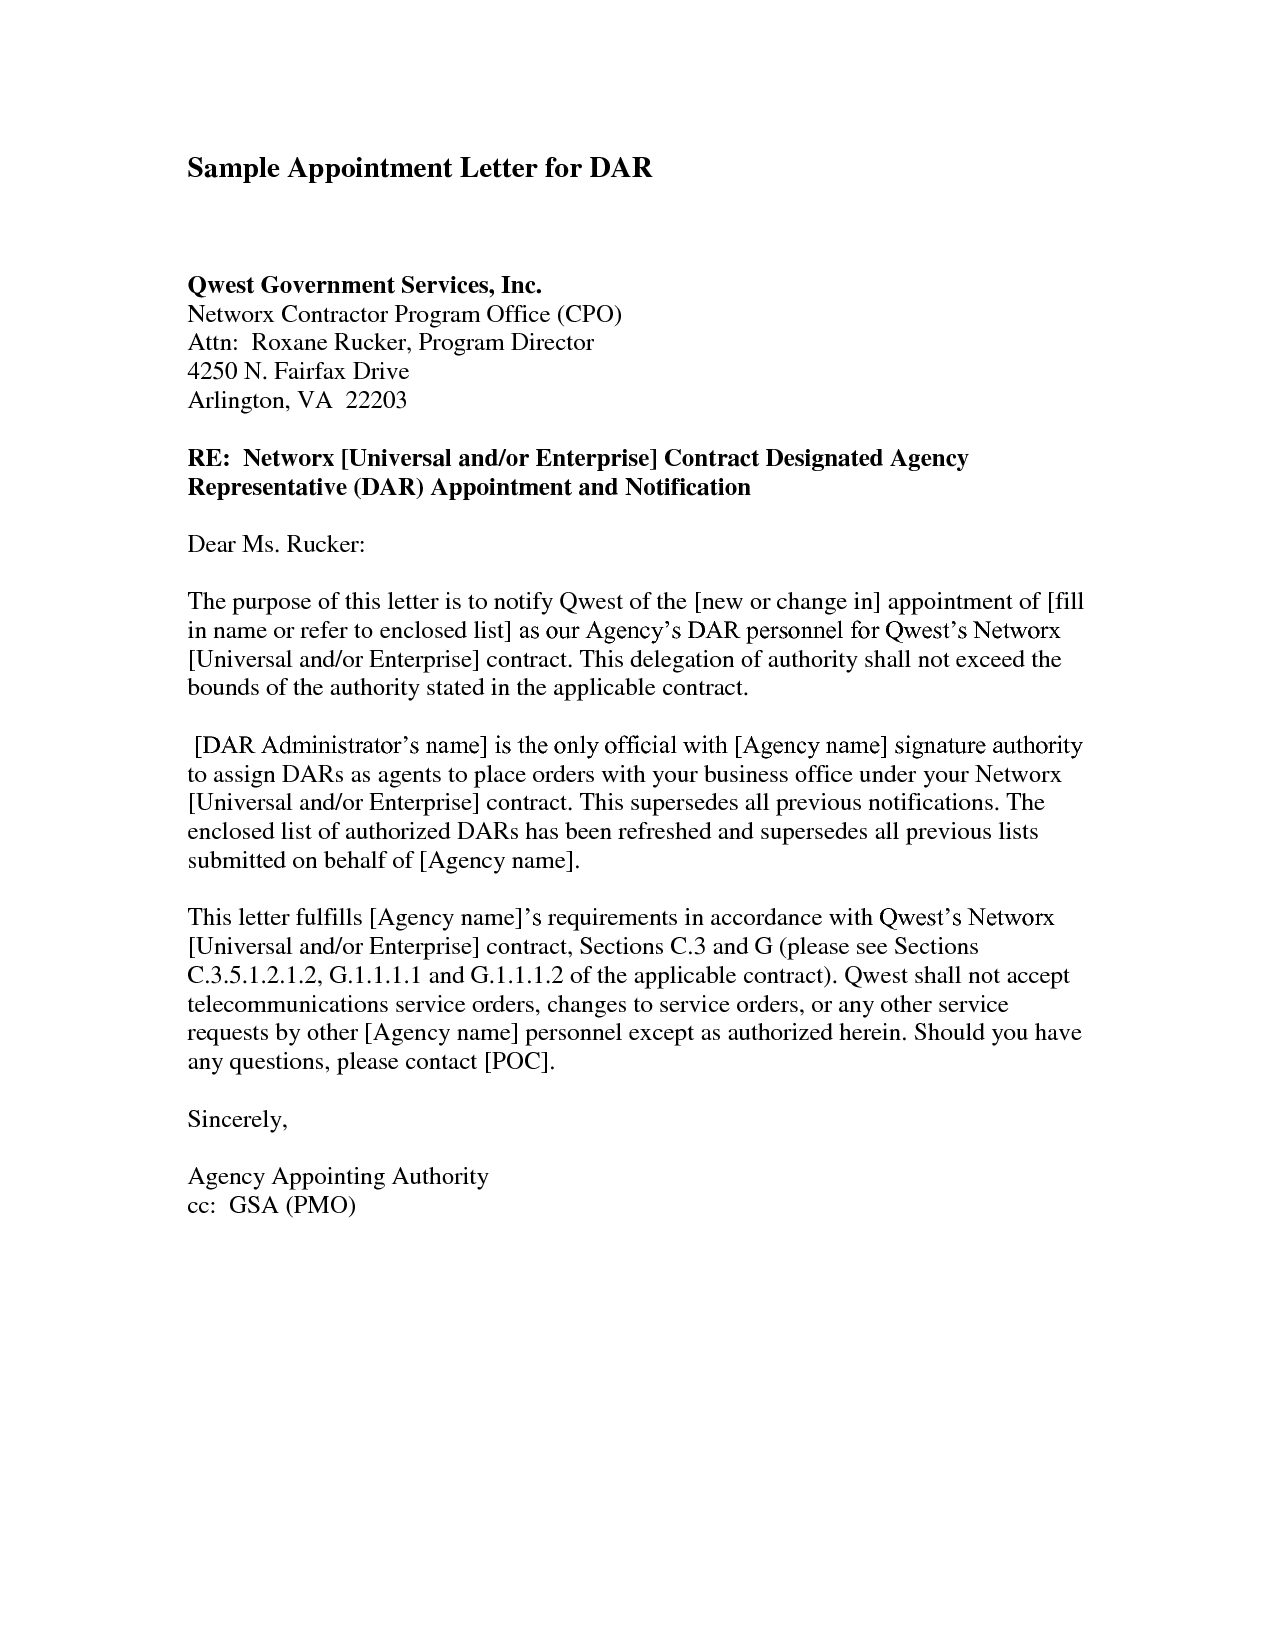 Past Due Collection Letter Template - Trustee Appointment Letter Director Trustee is Appointed or